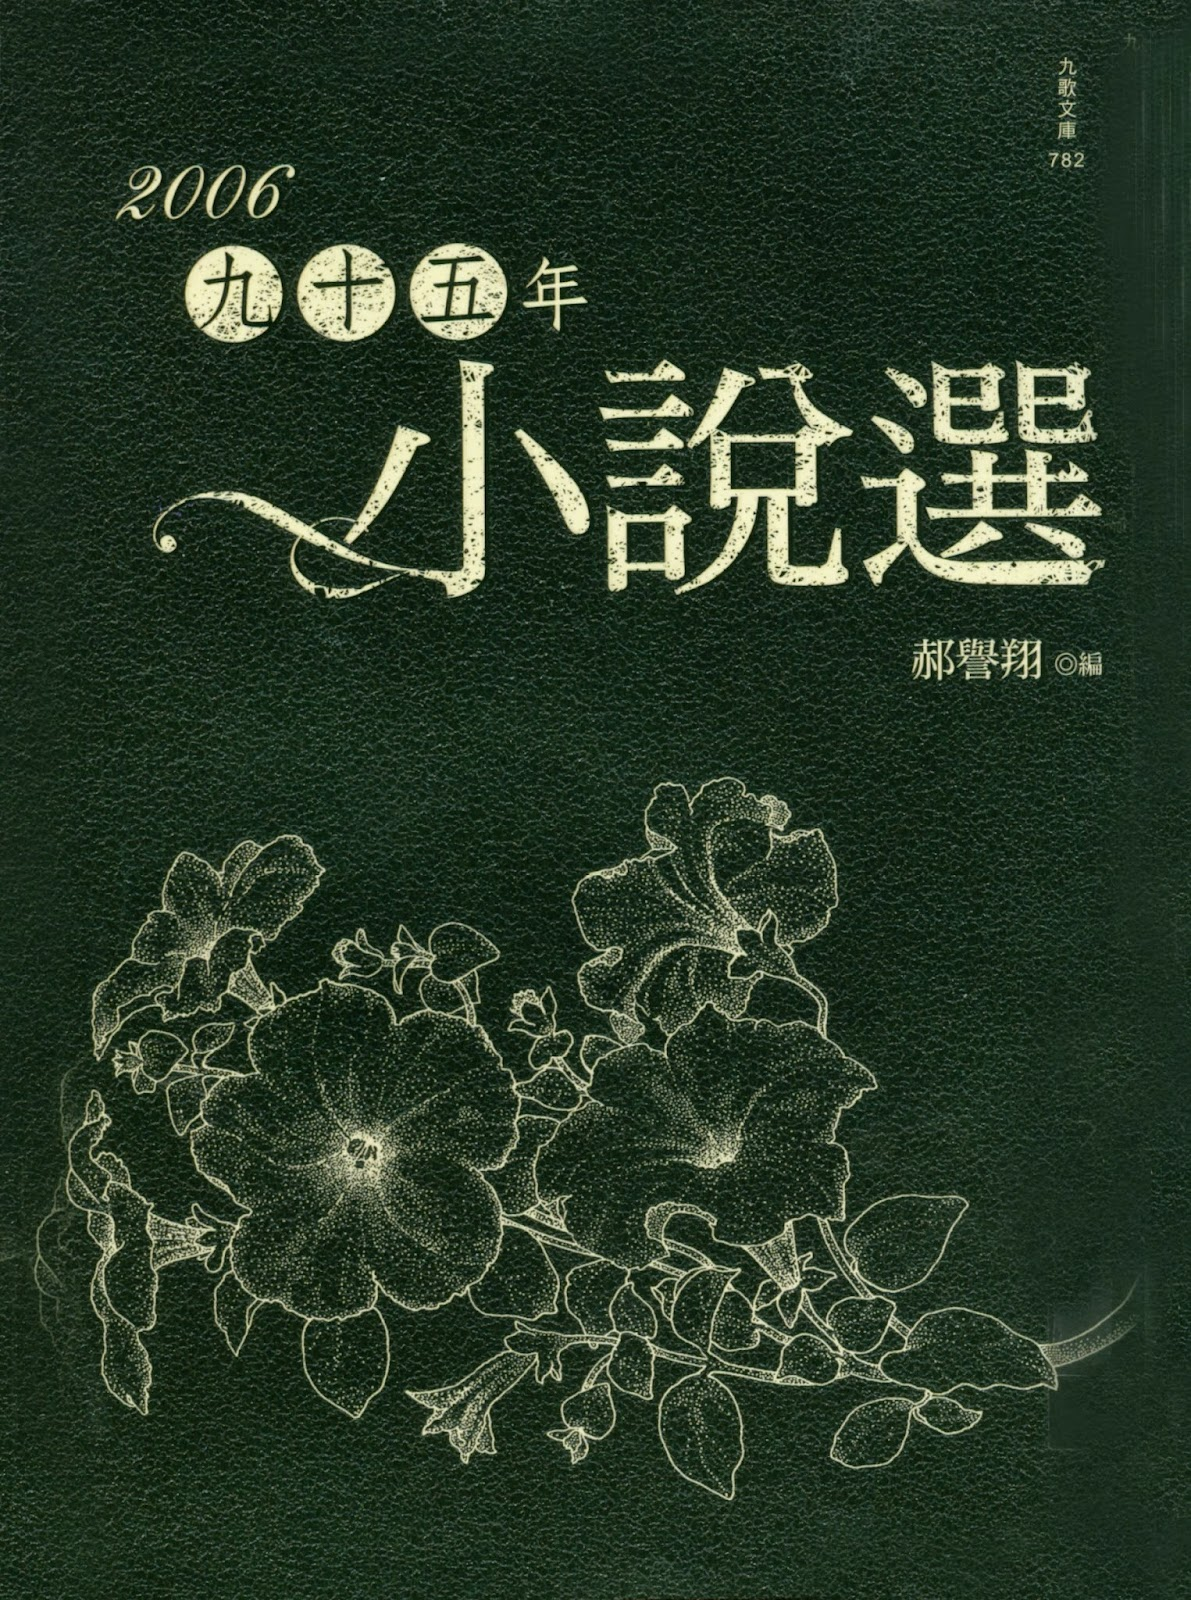 Selected Novellas in the Year Ninety-Five 《九十五年小說選》(2006)